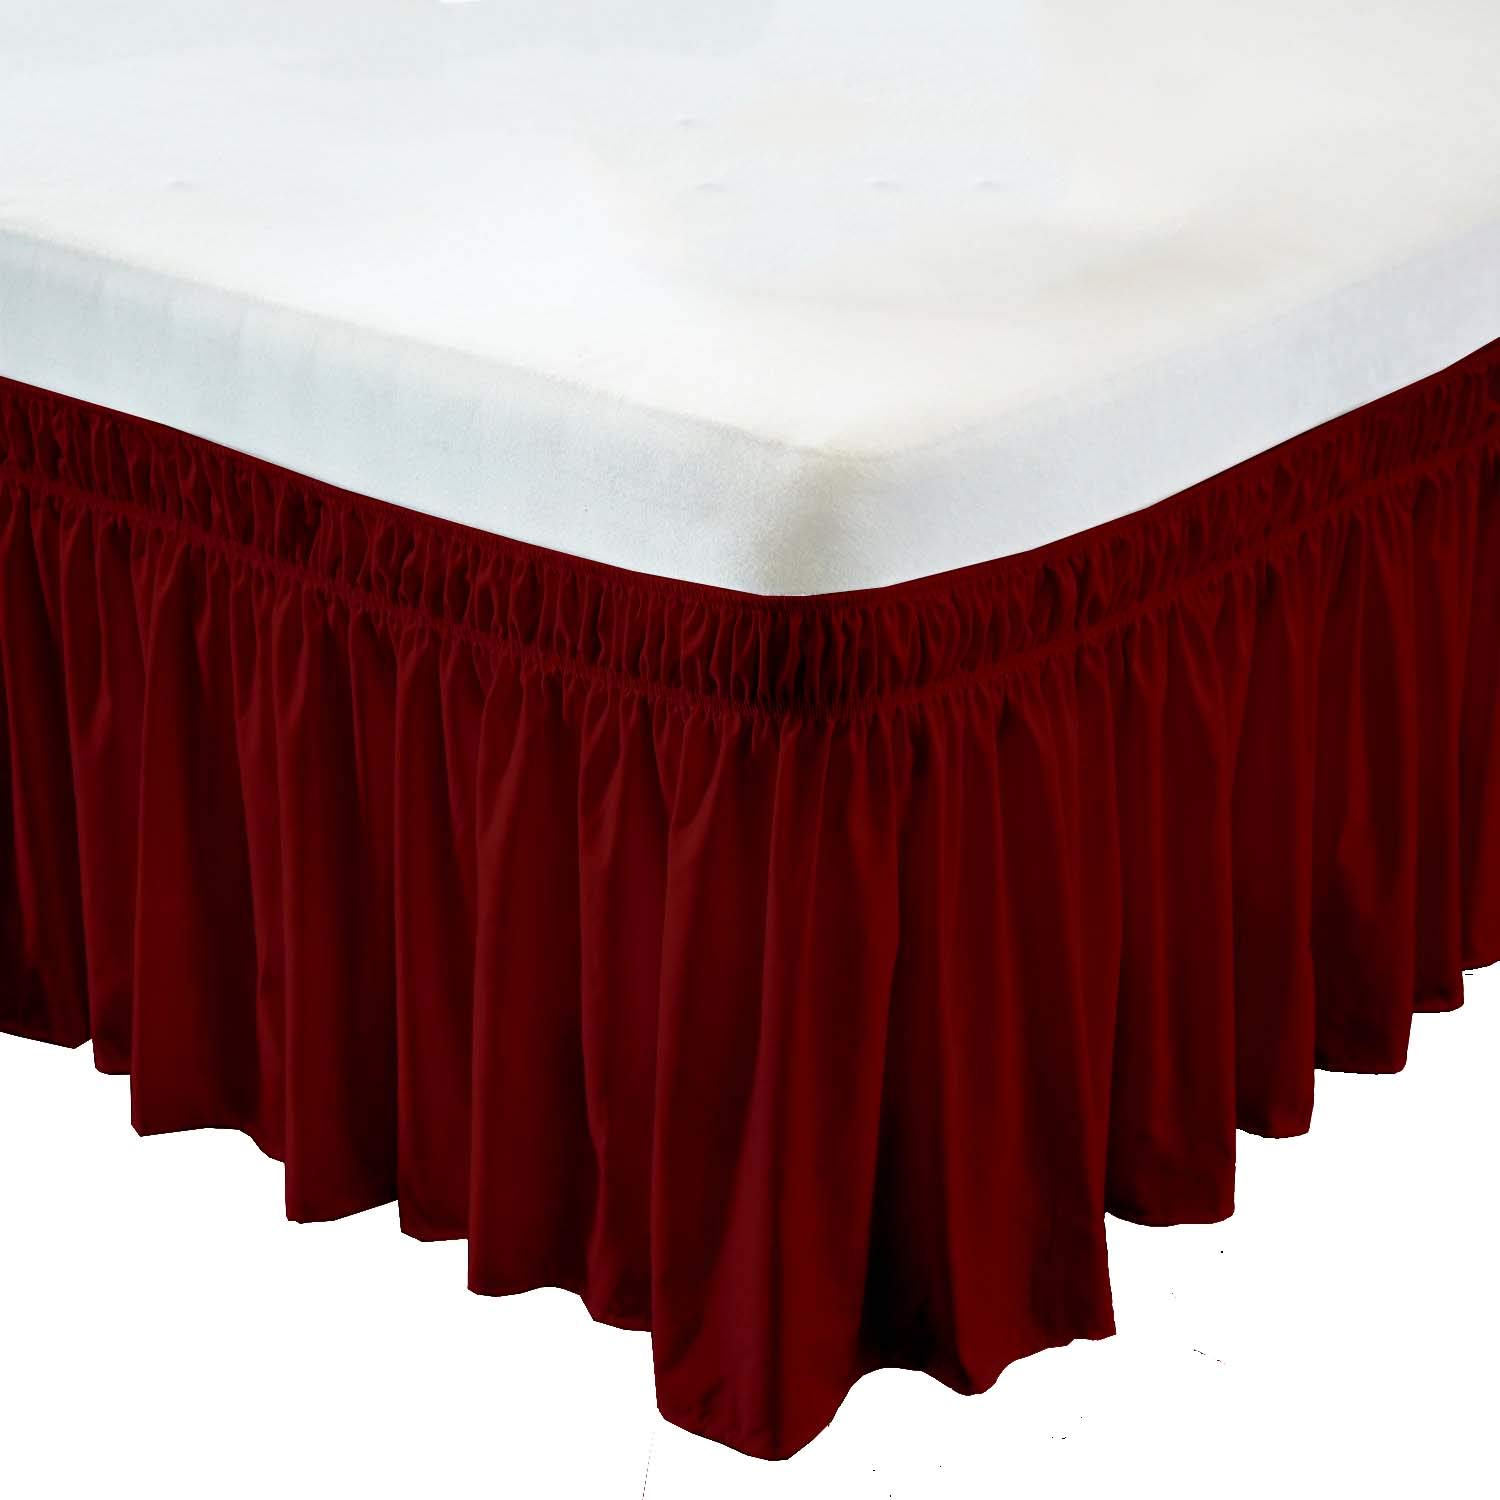 Wrap Around Bed Skirt- 12 Inch Drop Length Style Easy Fit Elastic Bed Ruffles Bed-Skirt Wrinkle Free Bed Skirt - Burgundy, King in All Bed Sizes and Colors